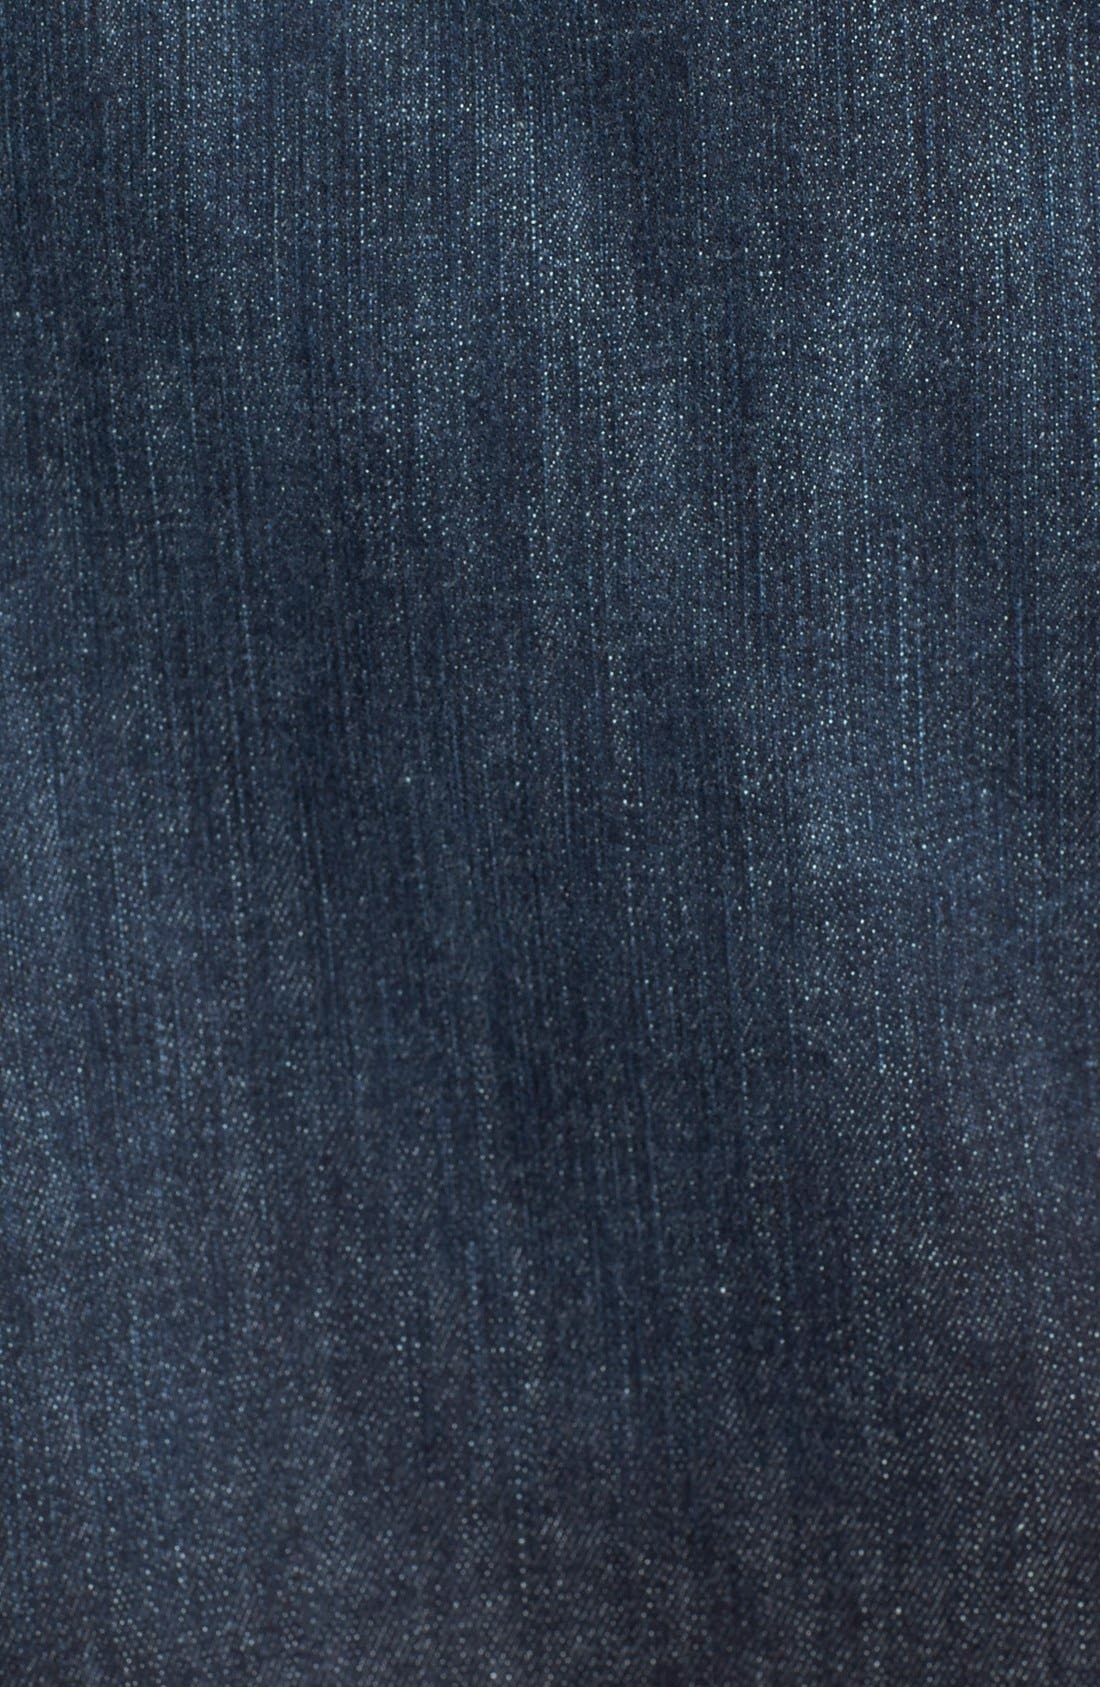 'Helena' Denim Jacket,                             Alternate thumbnail 31, color,